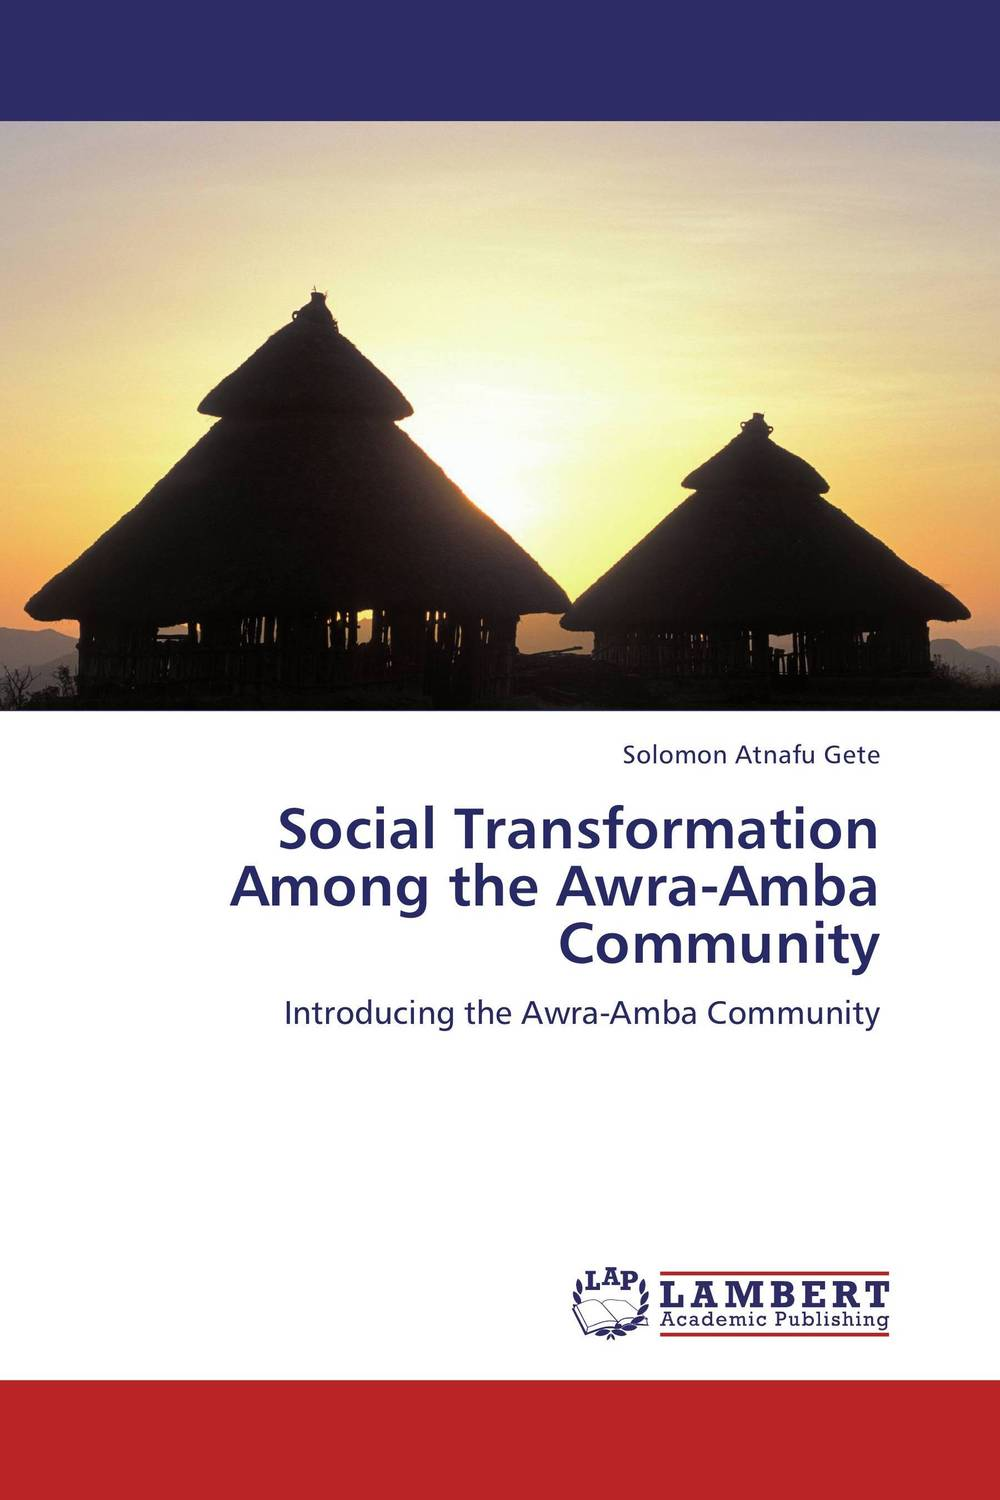 Social Transformation Among the Awra-Amba Community